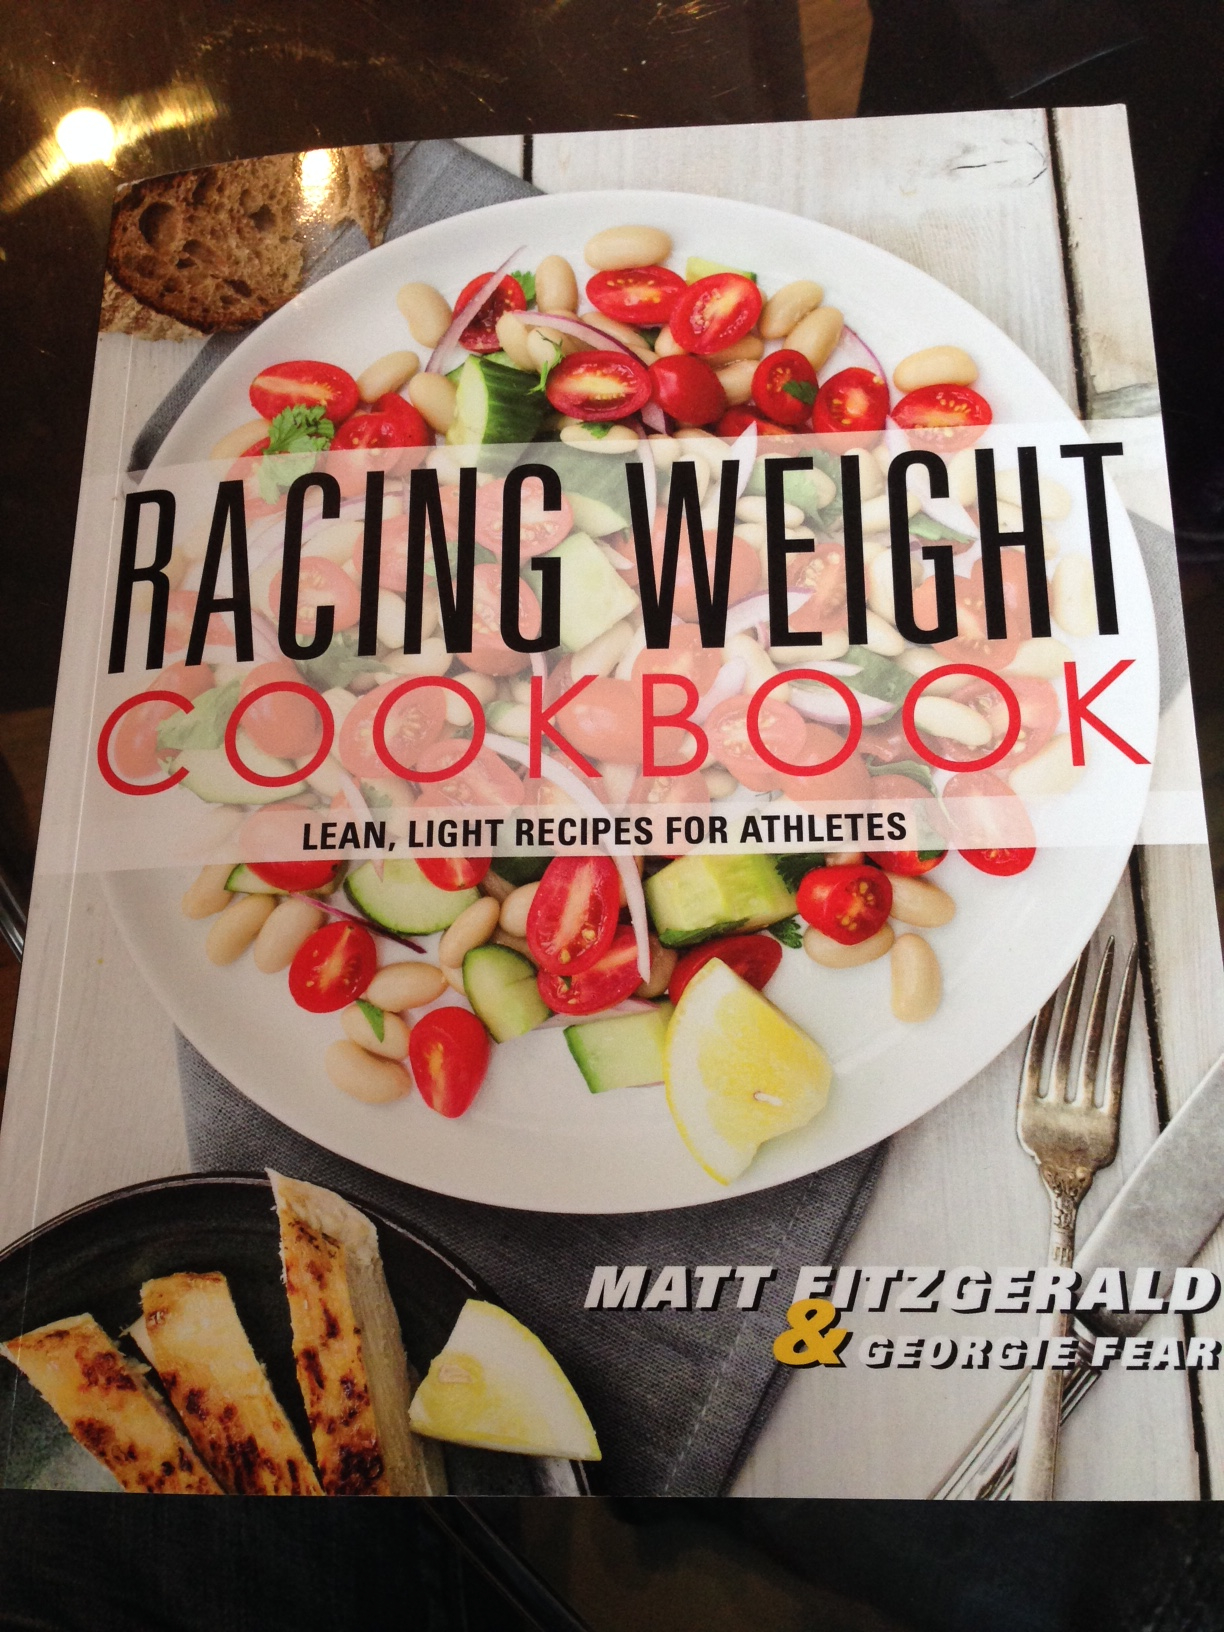 Matt Fitzgerald's cookbook - so far, so good!